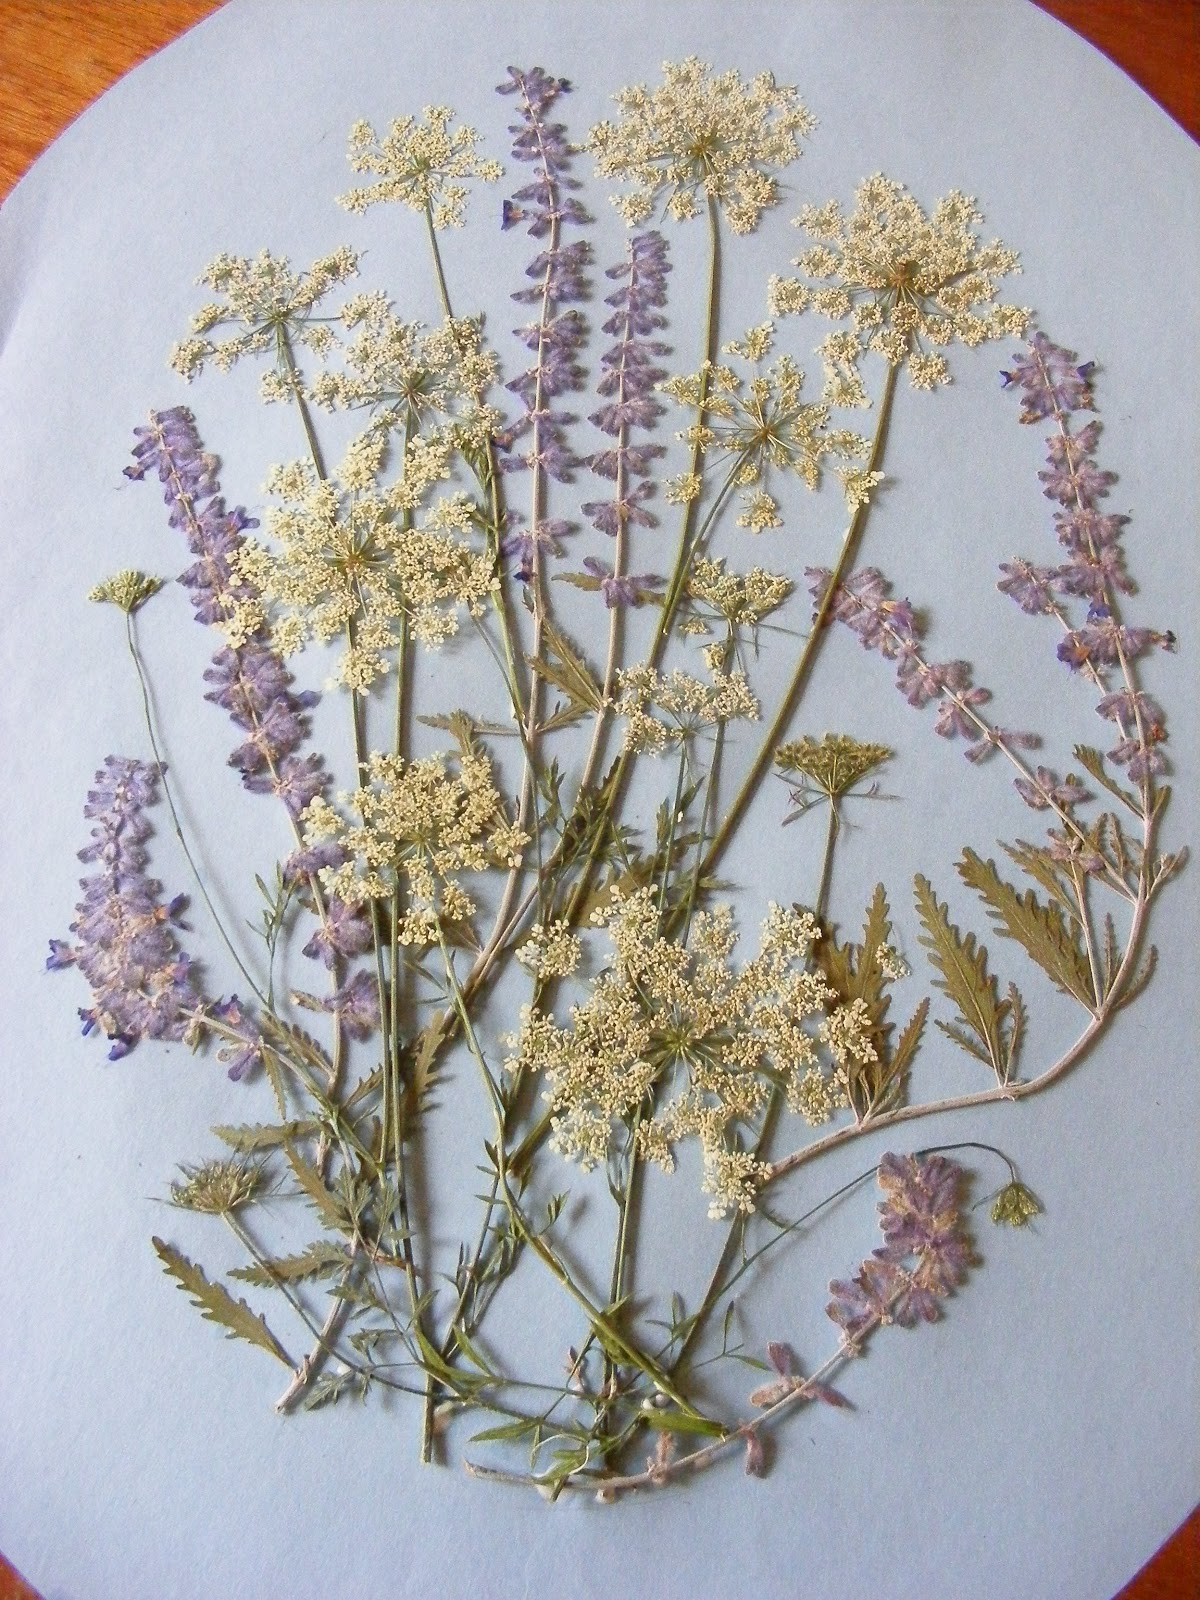 The Dusty Lane Queen Annes Lace Pressed Flowers In A Frame